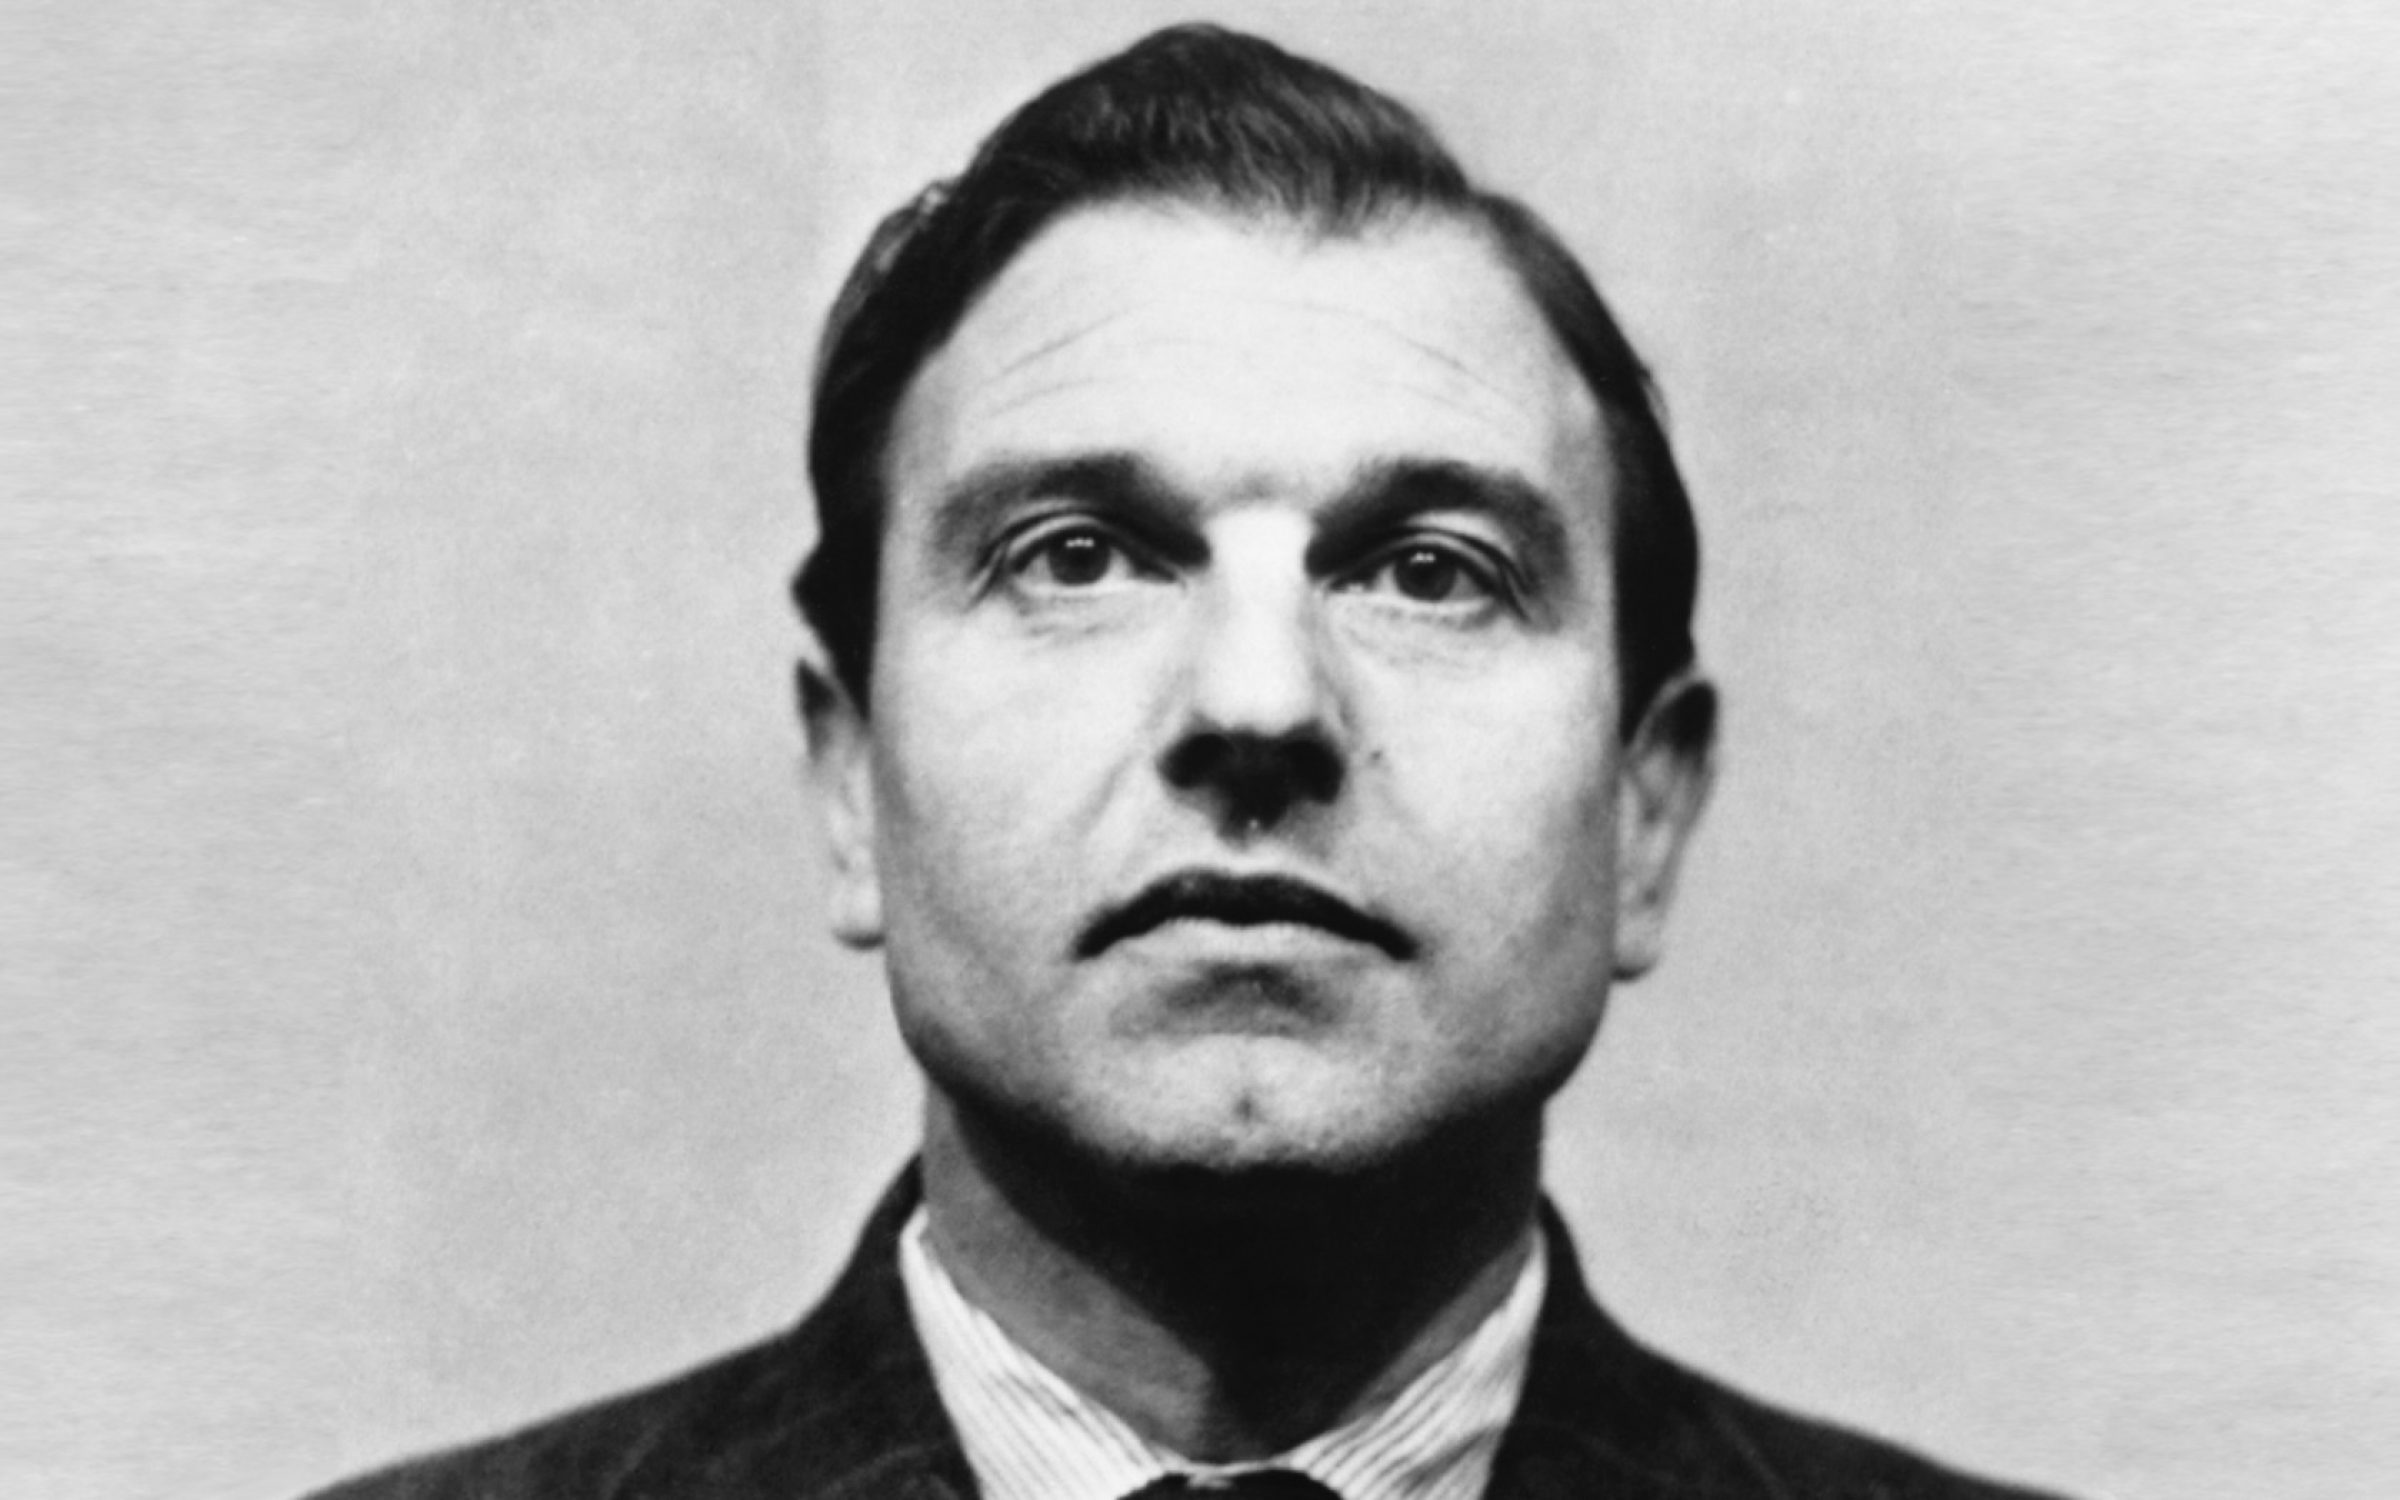 George Blake died in Moscow, his country of exile. Credit: Hulton-Deutsch Collection/CORBIS/Corbis via Getty Images.